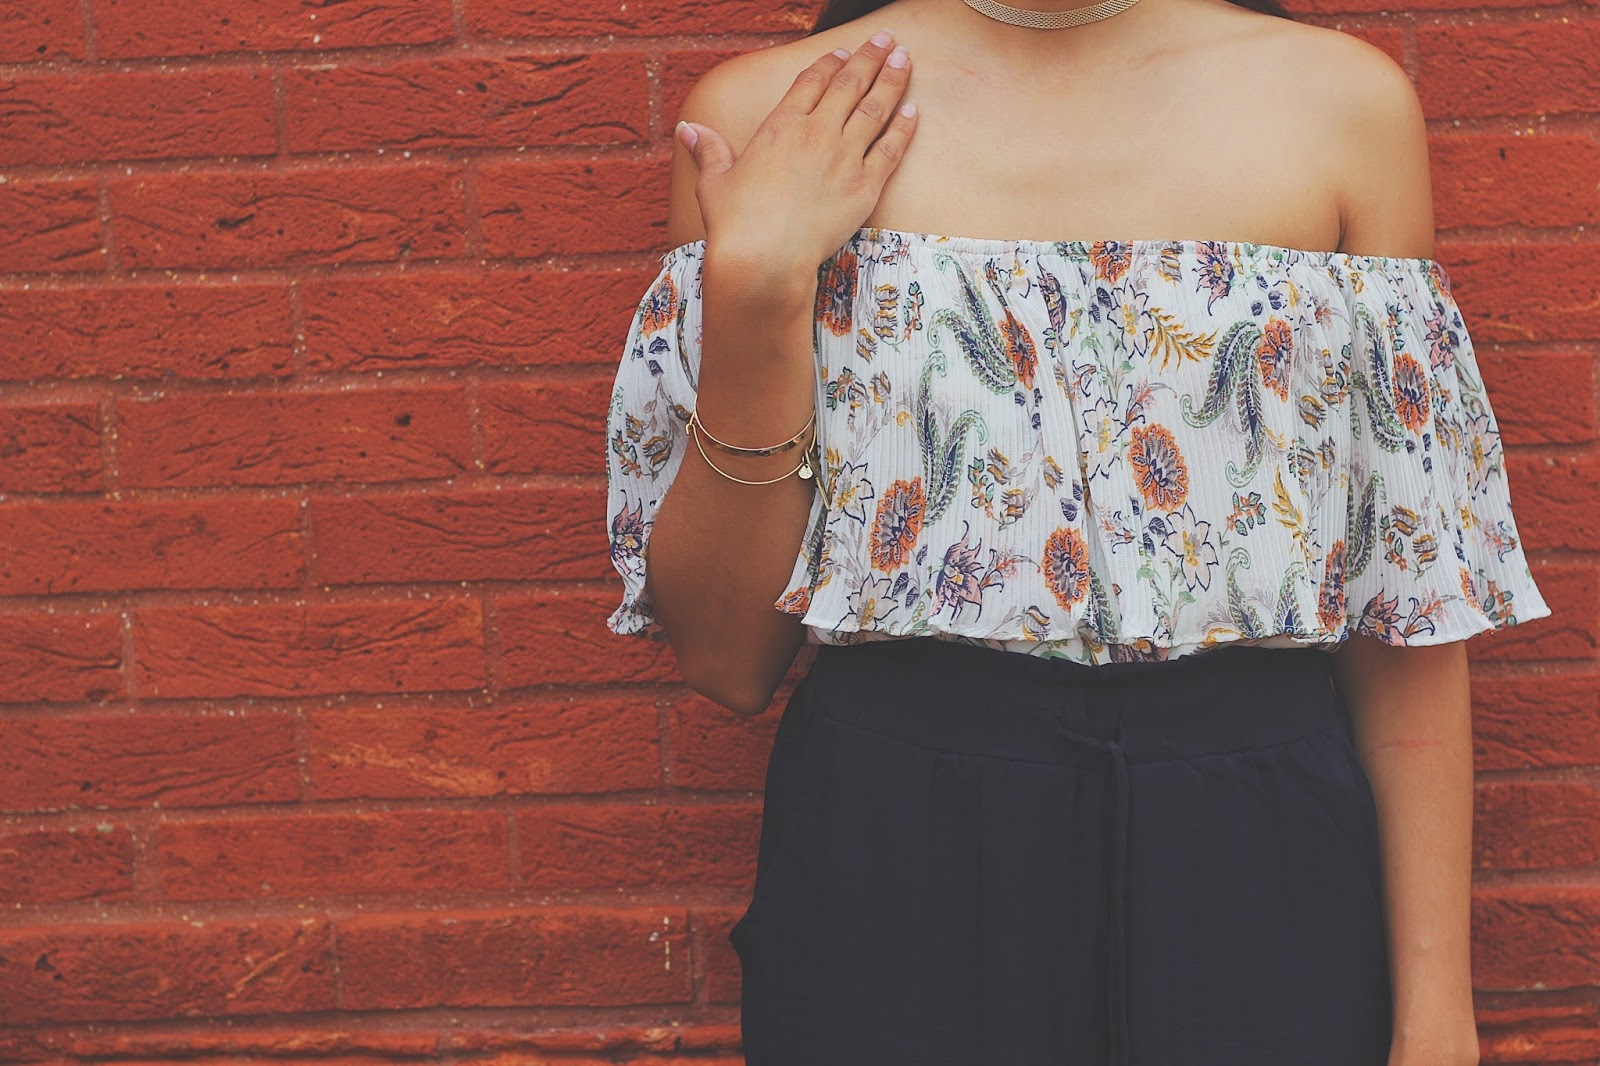 This Accordion Off The Shoulder Top Caught My Eye Because Floral Prints Arent Like Typical Found On Other Tops And Dresses